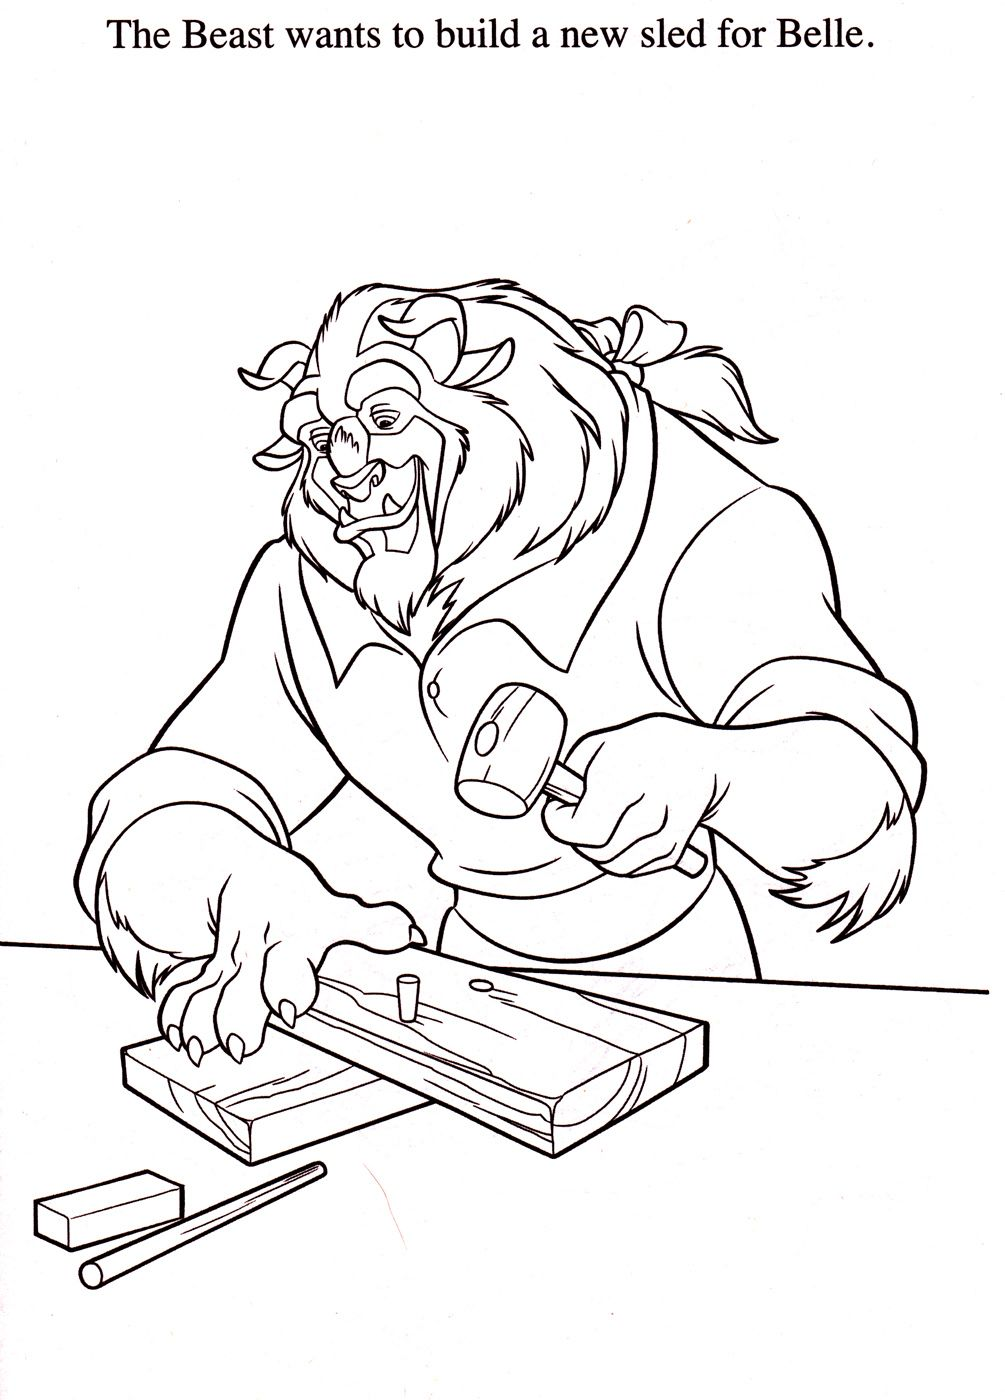 Ausmalbilder Disney Die Schöne Und Das Biest : Beauty And The Beast Coloring Pages Disney Coloring Pages